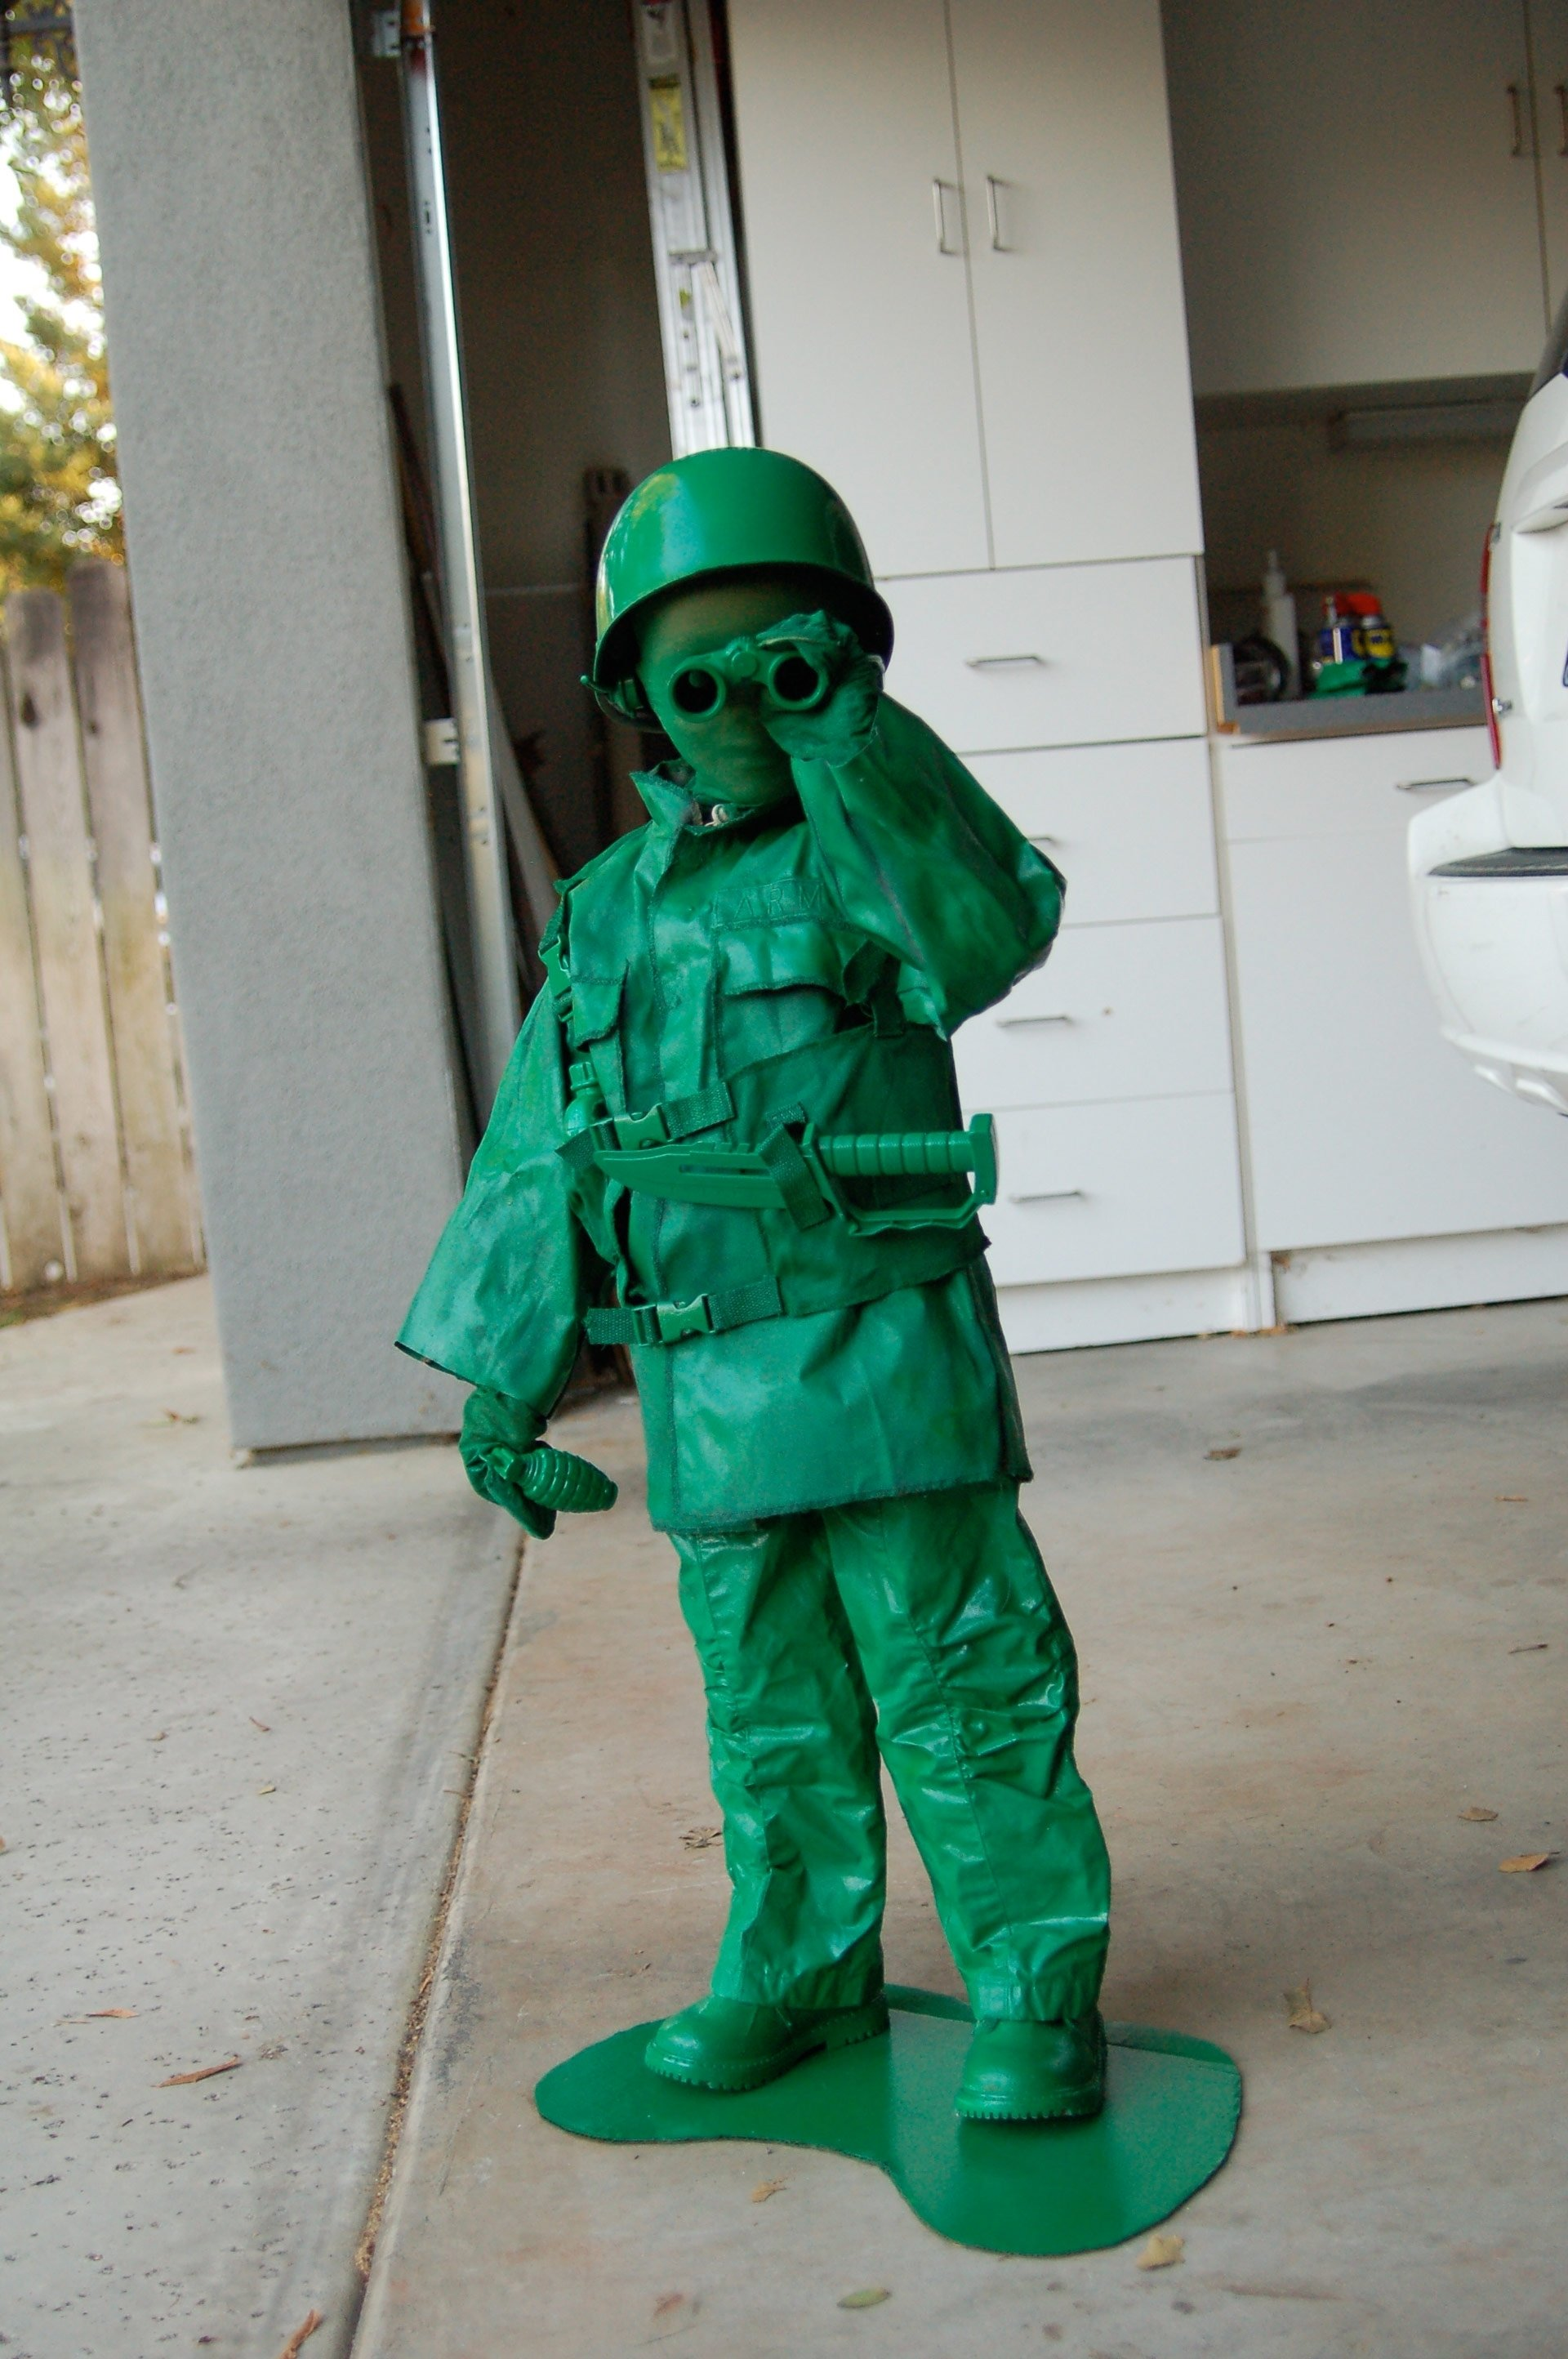 62 utterly adorable homemade halloween costumes for kids | army men